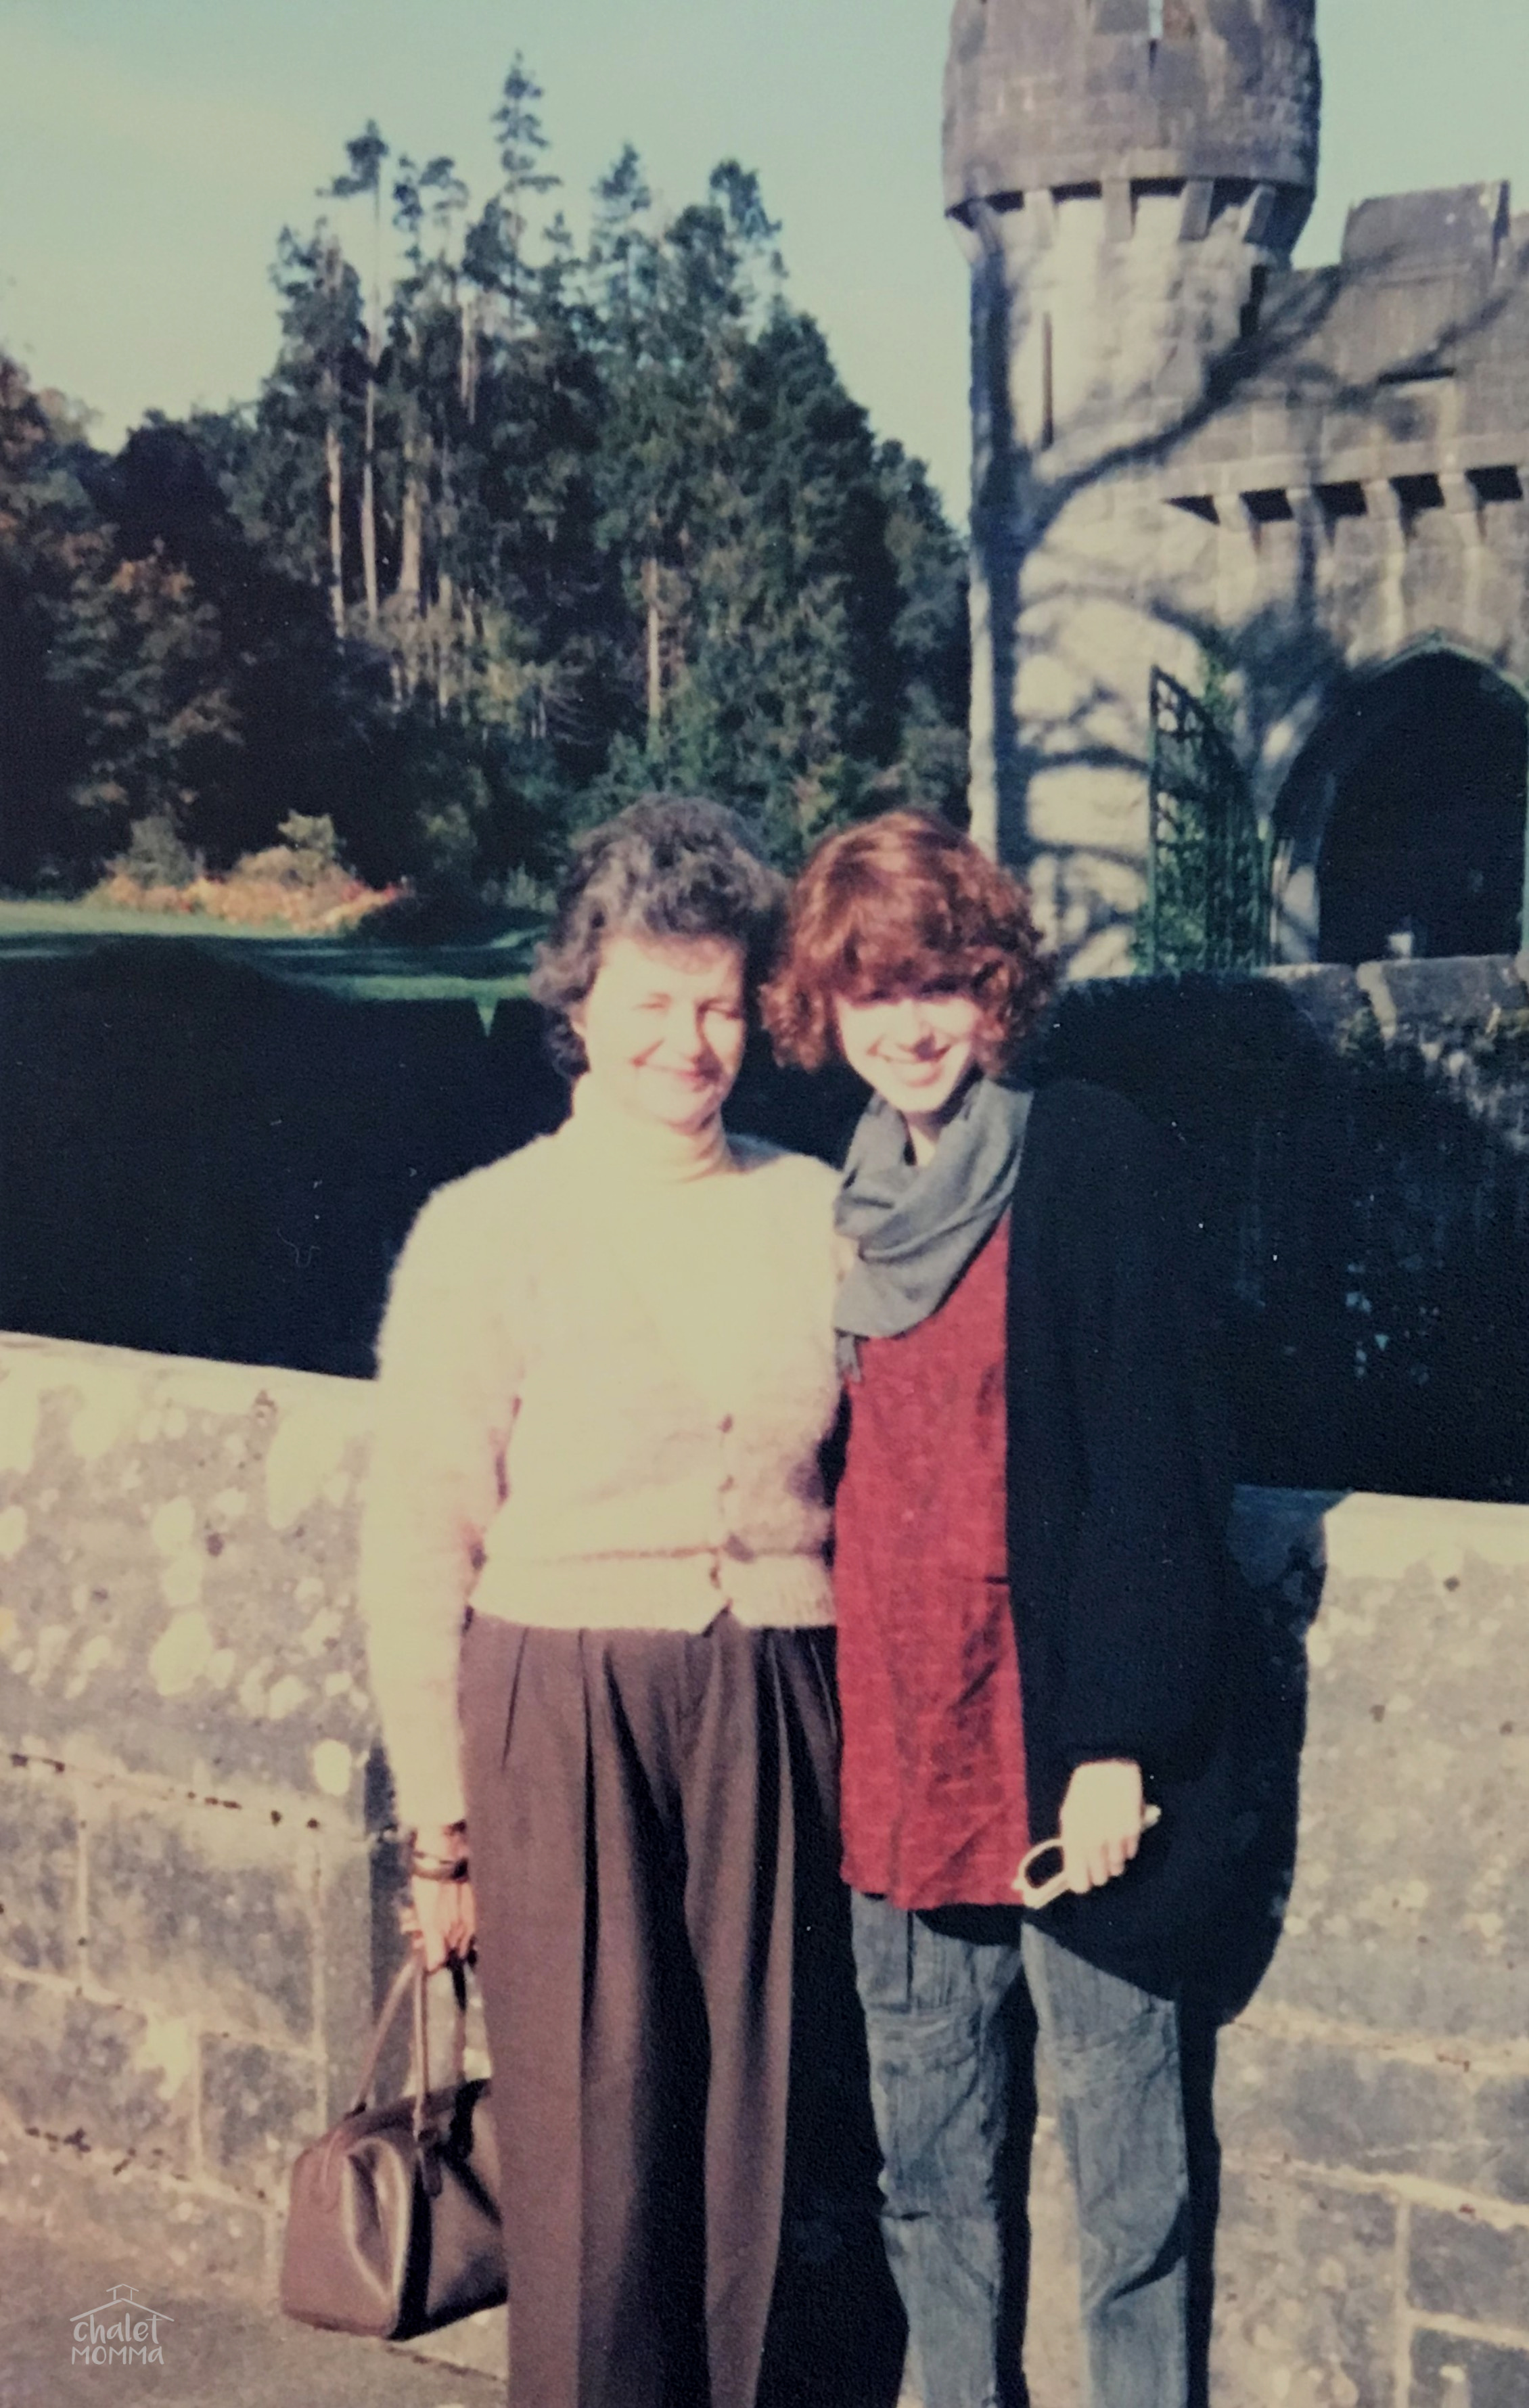 1985 Ireland. Look at how stylish she was in her cashmere and wool!